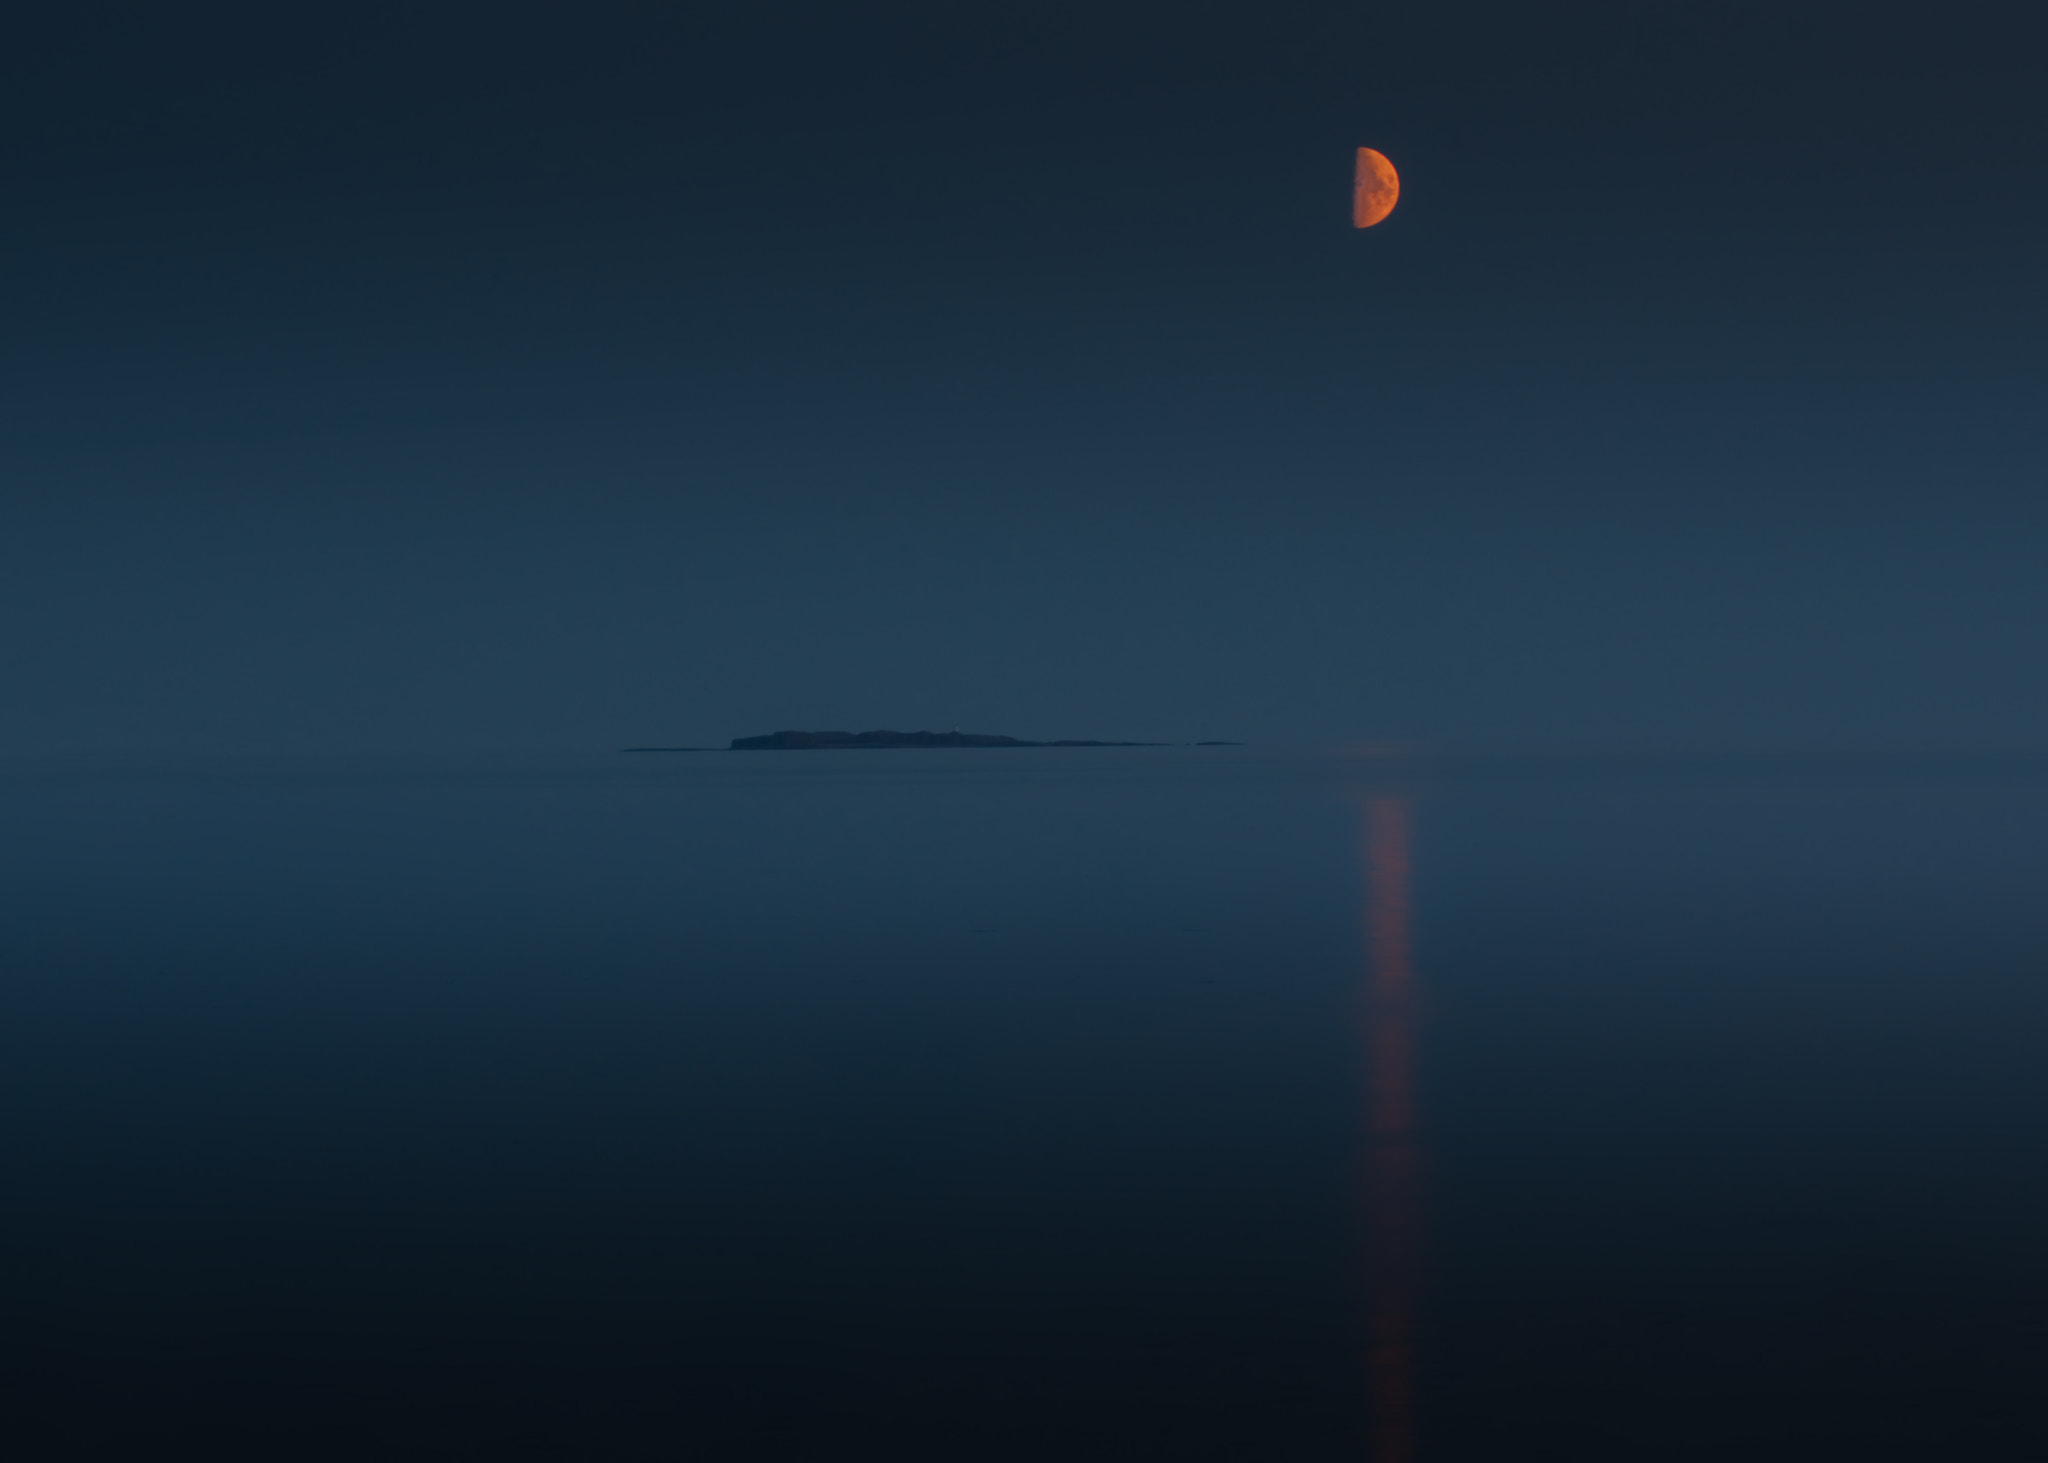 Photograph Moon by Rob Smith on 500px